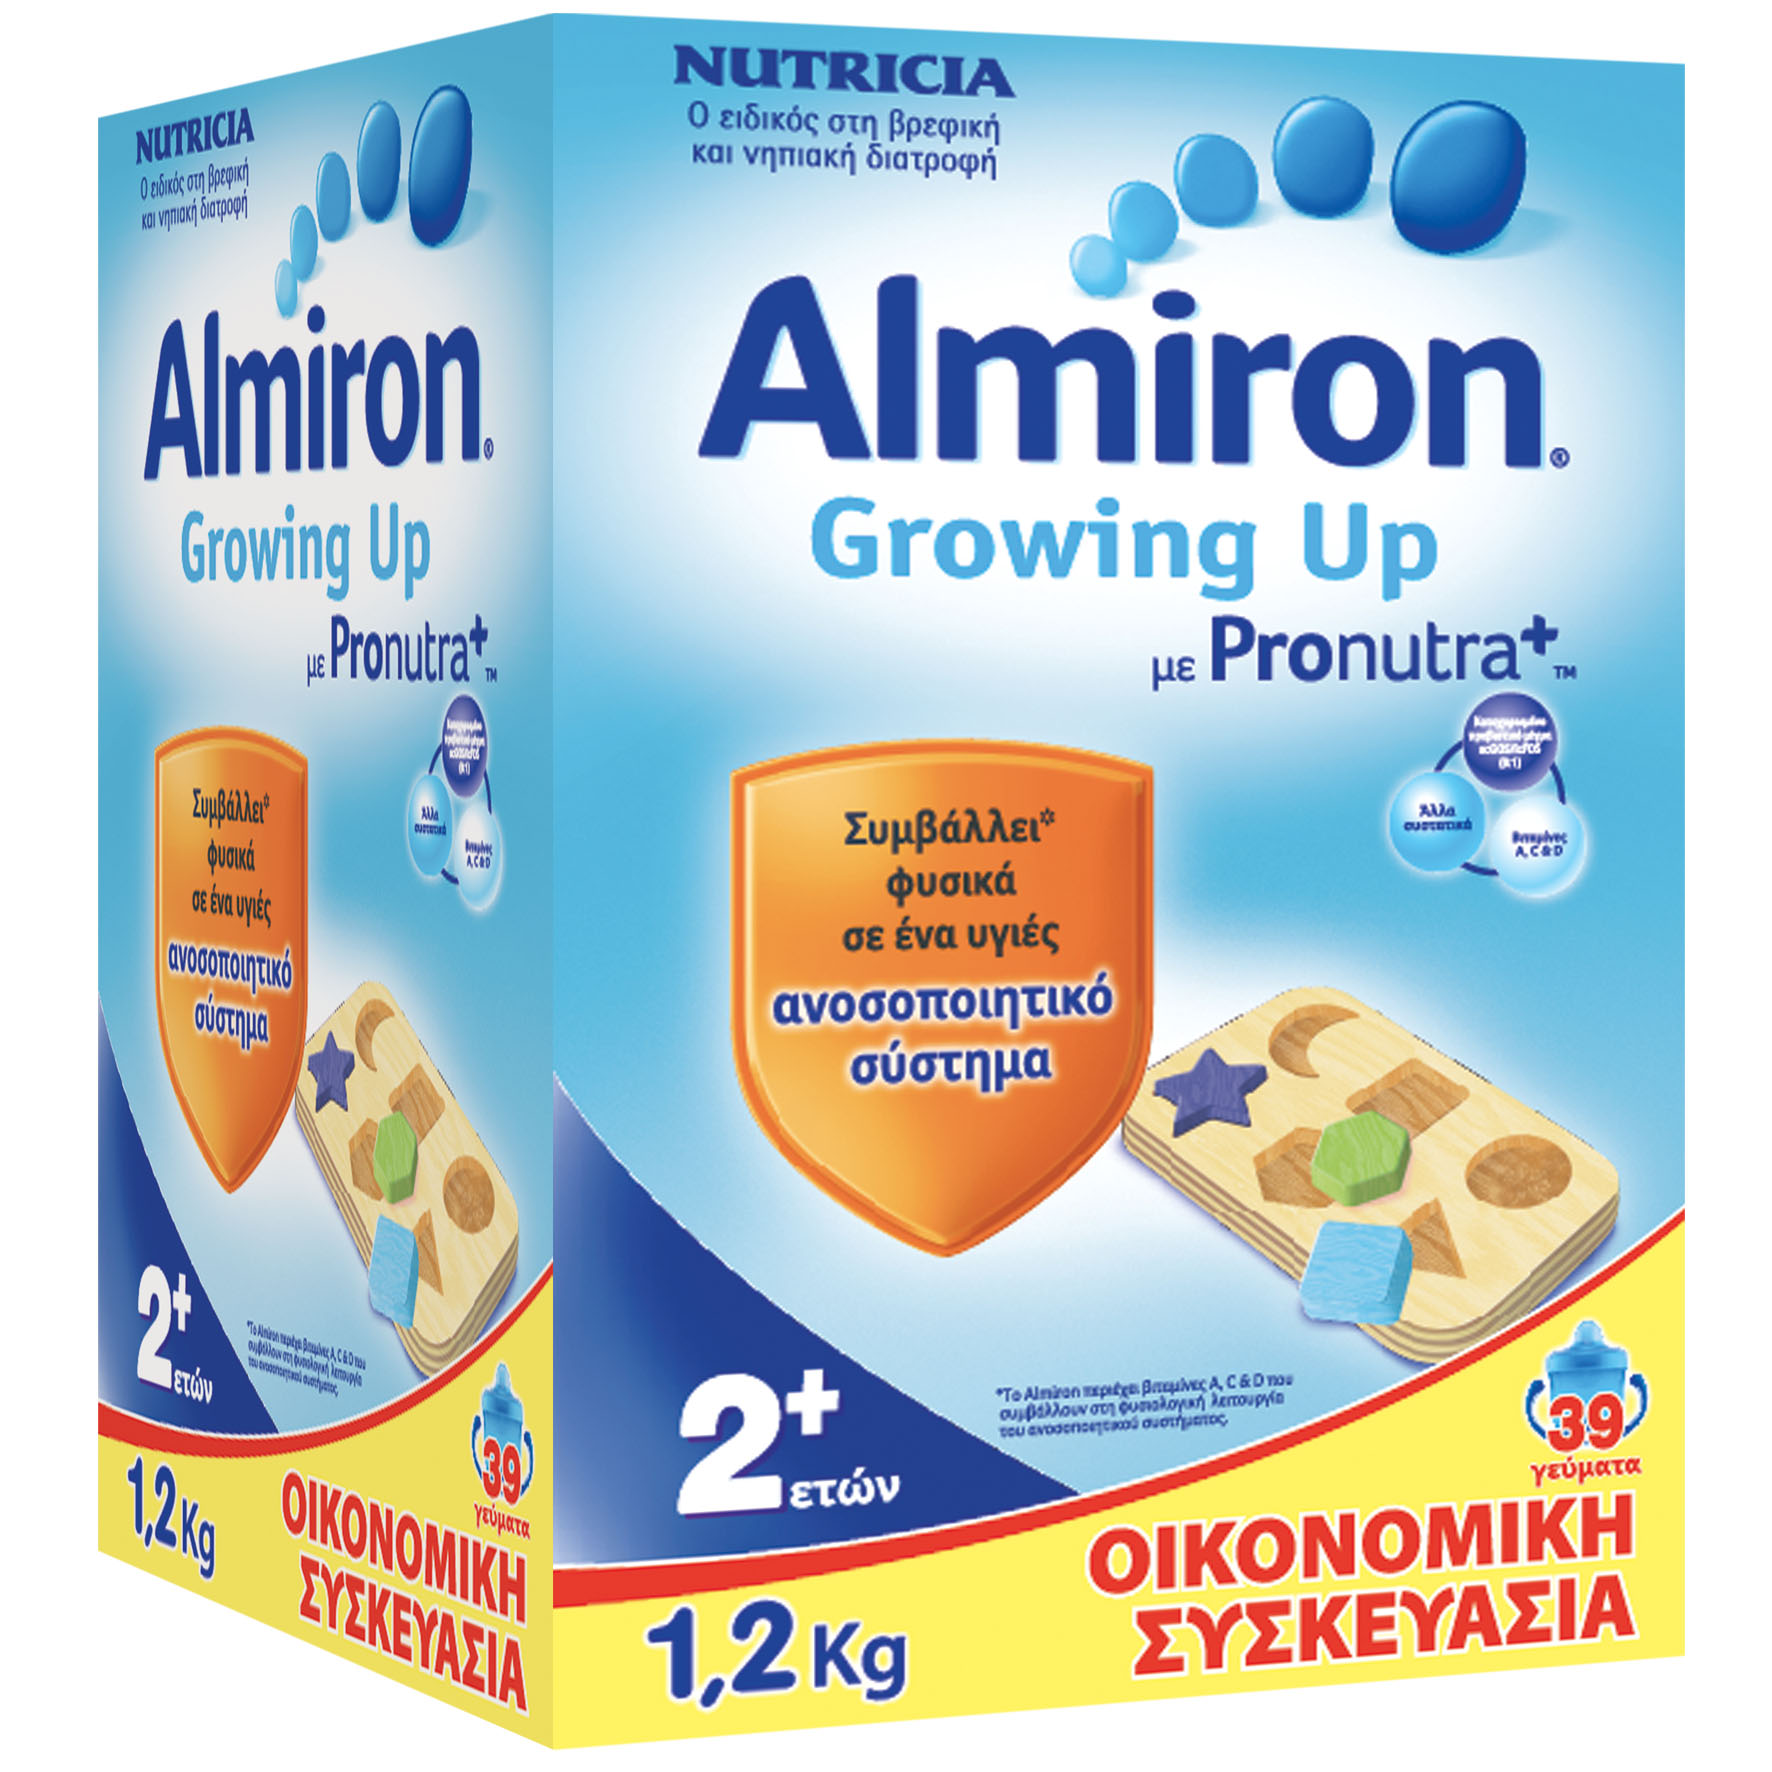 Nutricia Almiron Grow Up 2+, 1,2Kg